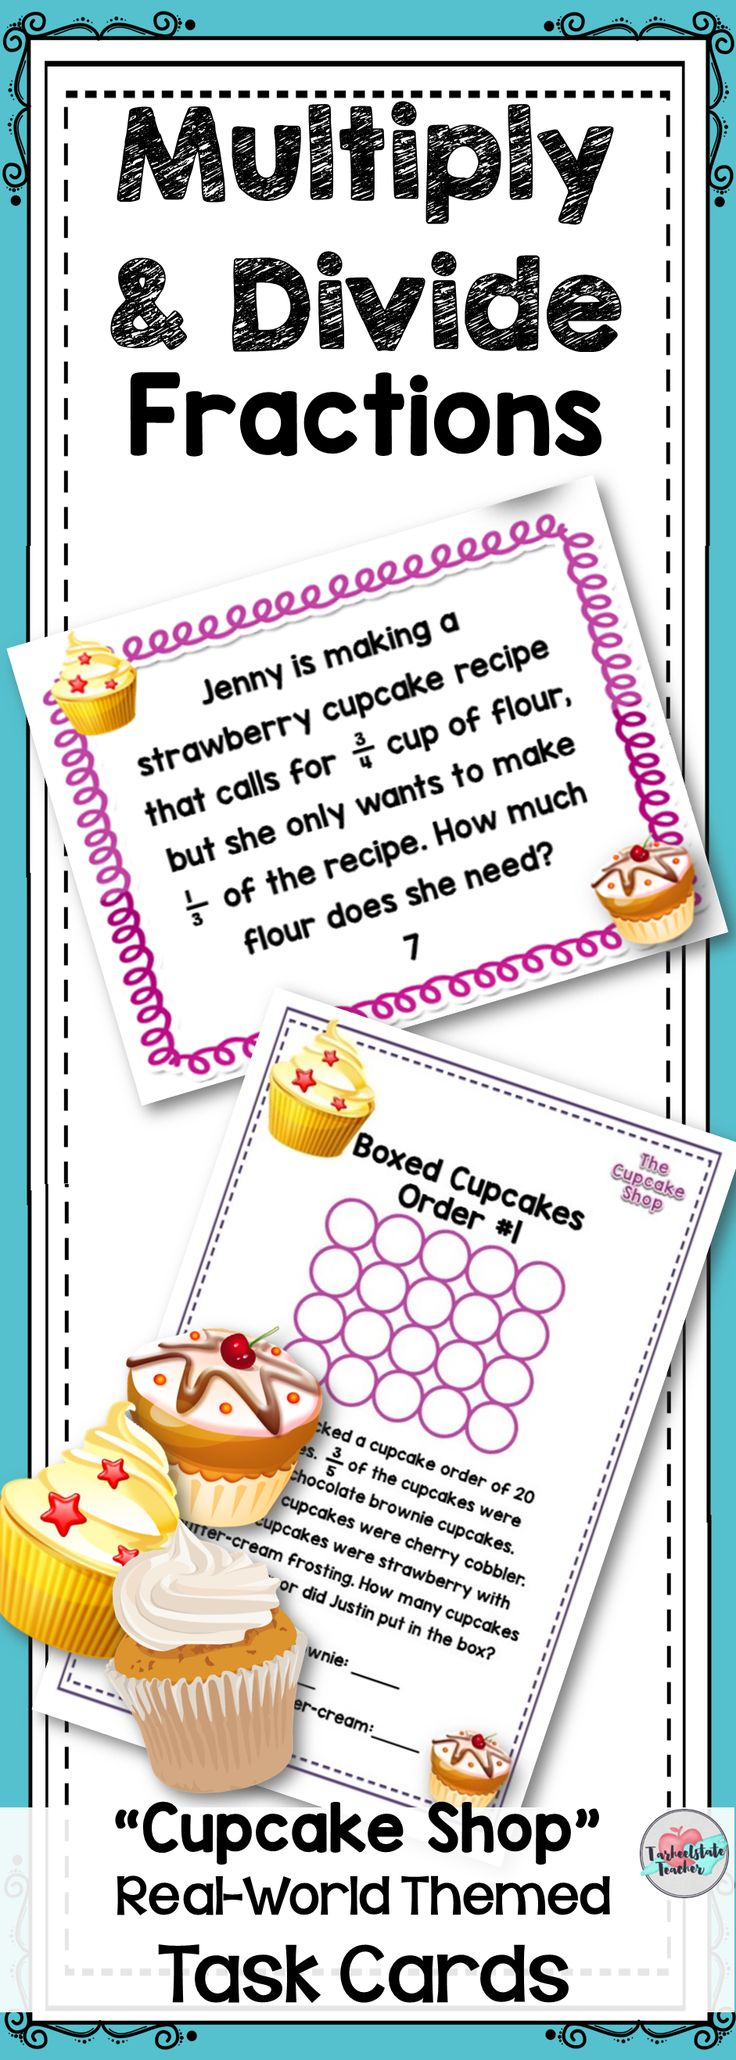 "Get your 4th or 5th grade students engaged and wanting gourmet cupcakes with these real world themed ""Cupcake Shop"" task cards for multiplying fractions (by fractions and by whole numbers) task cards. Your students will multiply and divide fractions to solve word problems. 4 problems where students create a visual representation to model multiplication of fractions are included. Print as worksheets or use as task cards. Put these in a station or center for extra practice! Extension…"